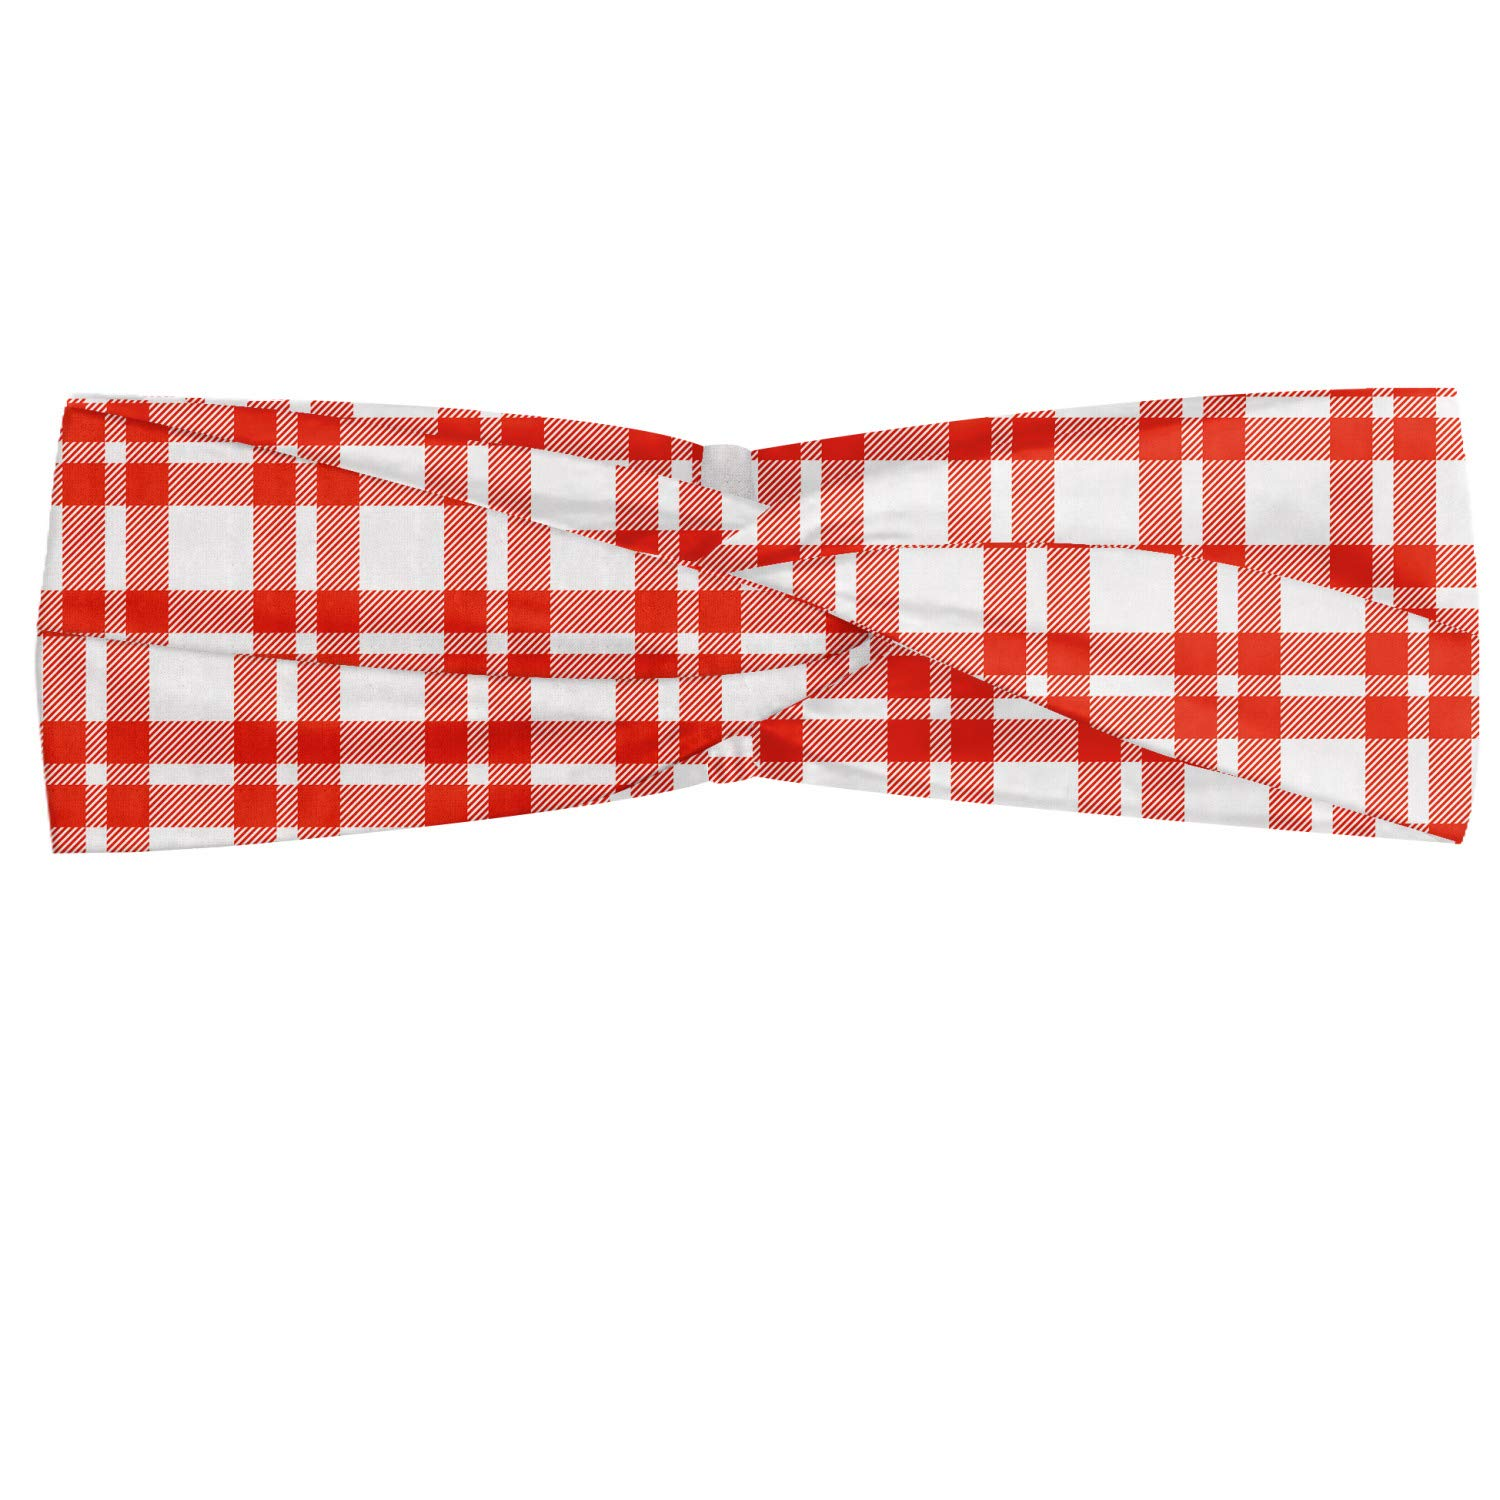 Ambesonne Plaid Headband, Colored and Checkered Country Picnic Pattern Repeating Squares Stripes Modern, Elastic and Soft Women's Bandana for Sports and Everyday Use, Vermilion White